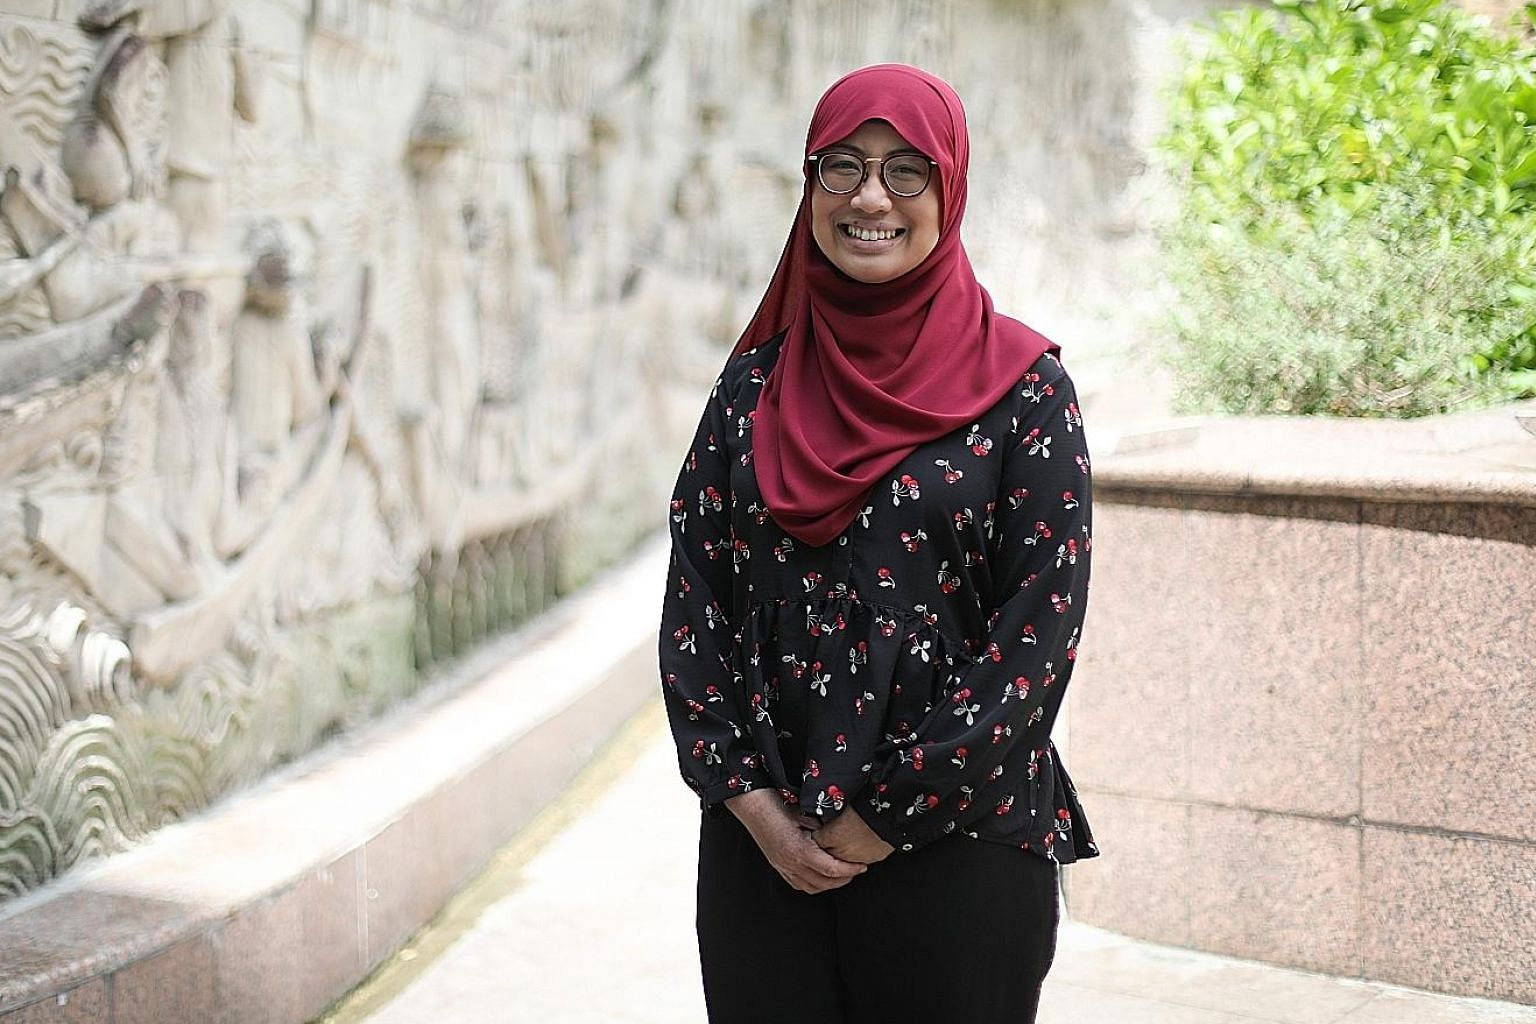 """Part-time lecturer Noor Lyna Zainuddin, who discussed ways to improve work-life harmony with 57 other citizens last year, said the experience was """"very mentally tiring"""" but """"well worth it""""."""